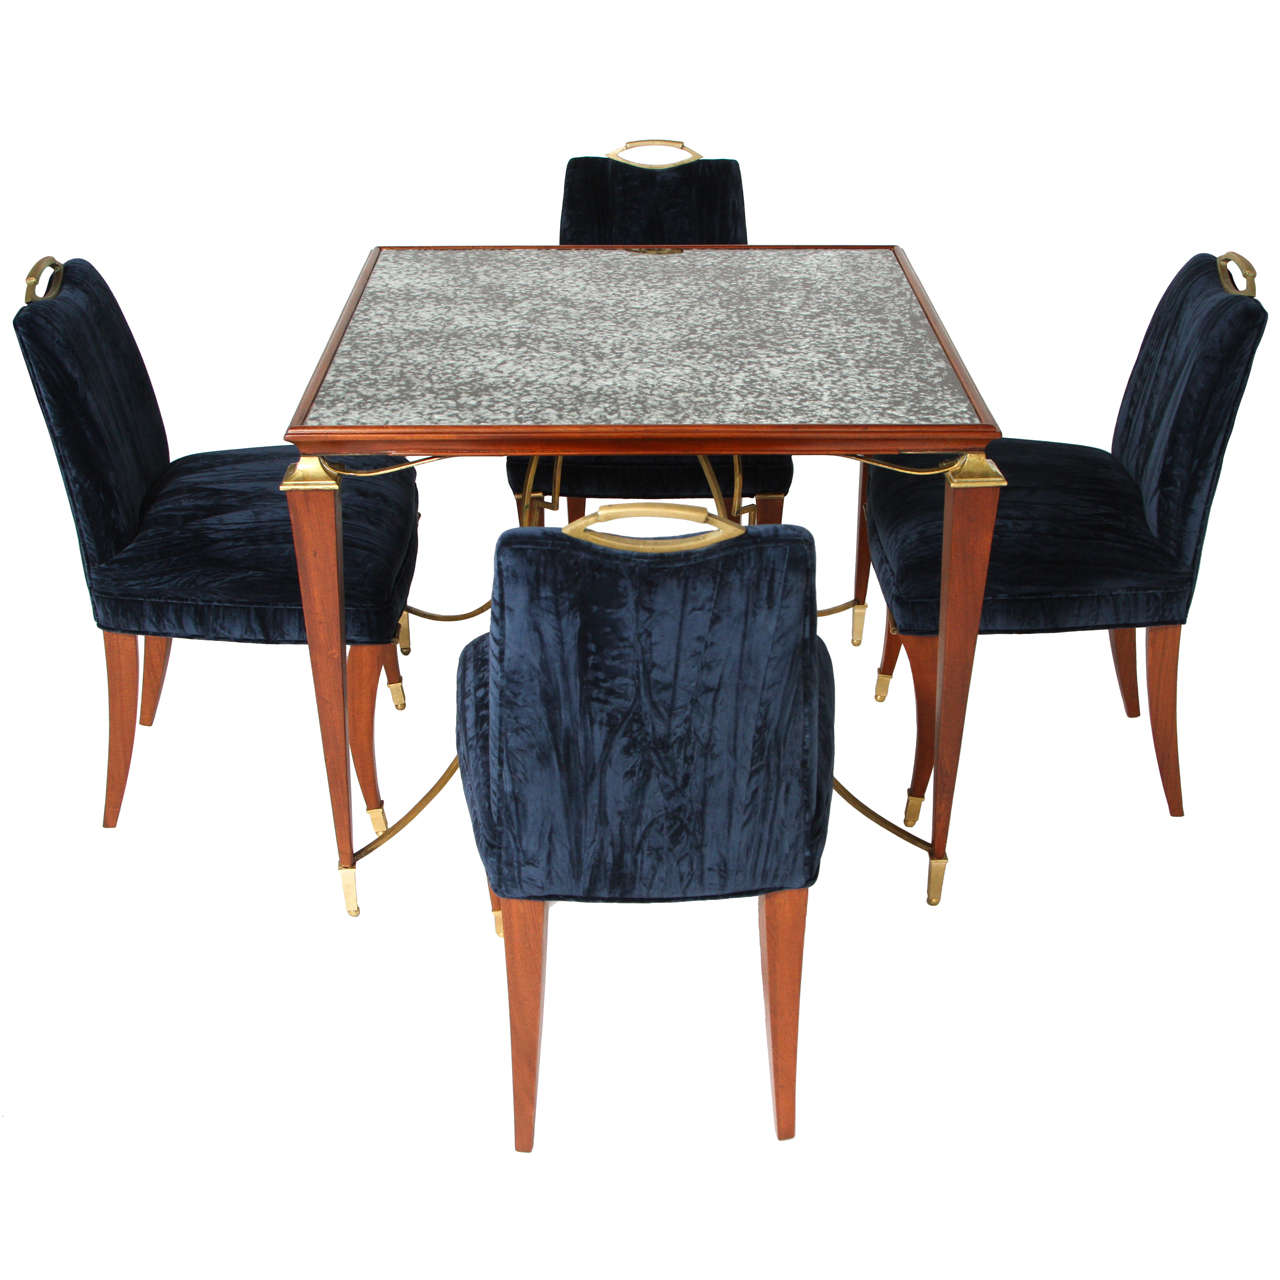 Opulent 1940 s Arturo Pani Table and Chairs at 1stdibs